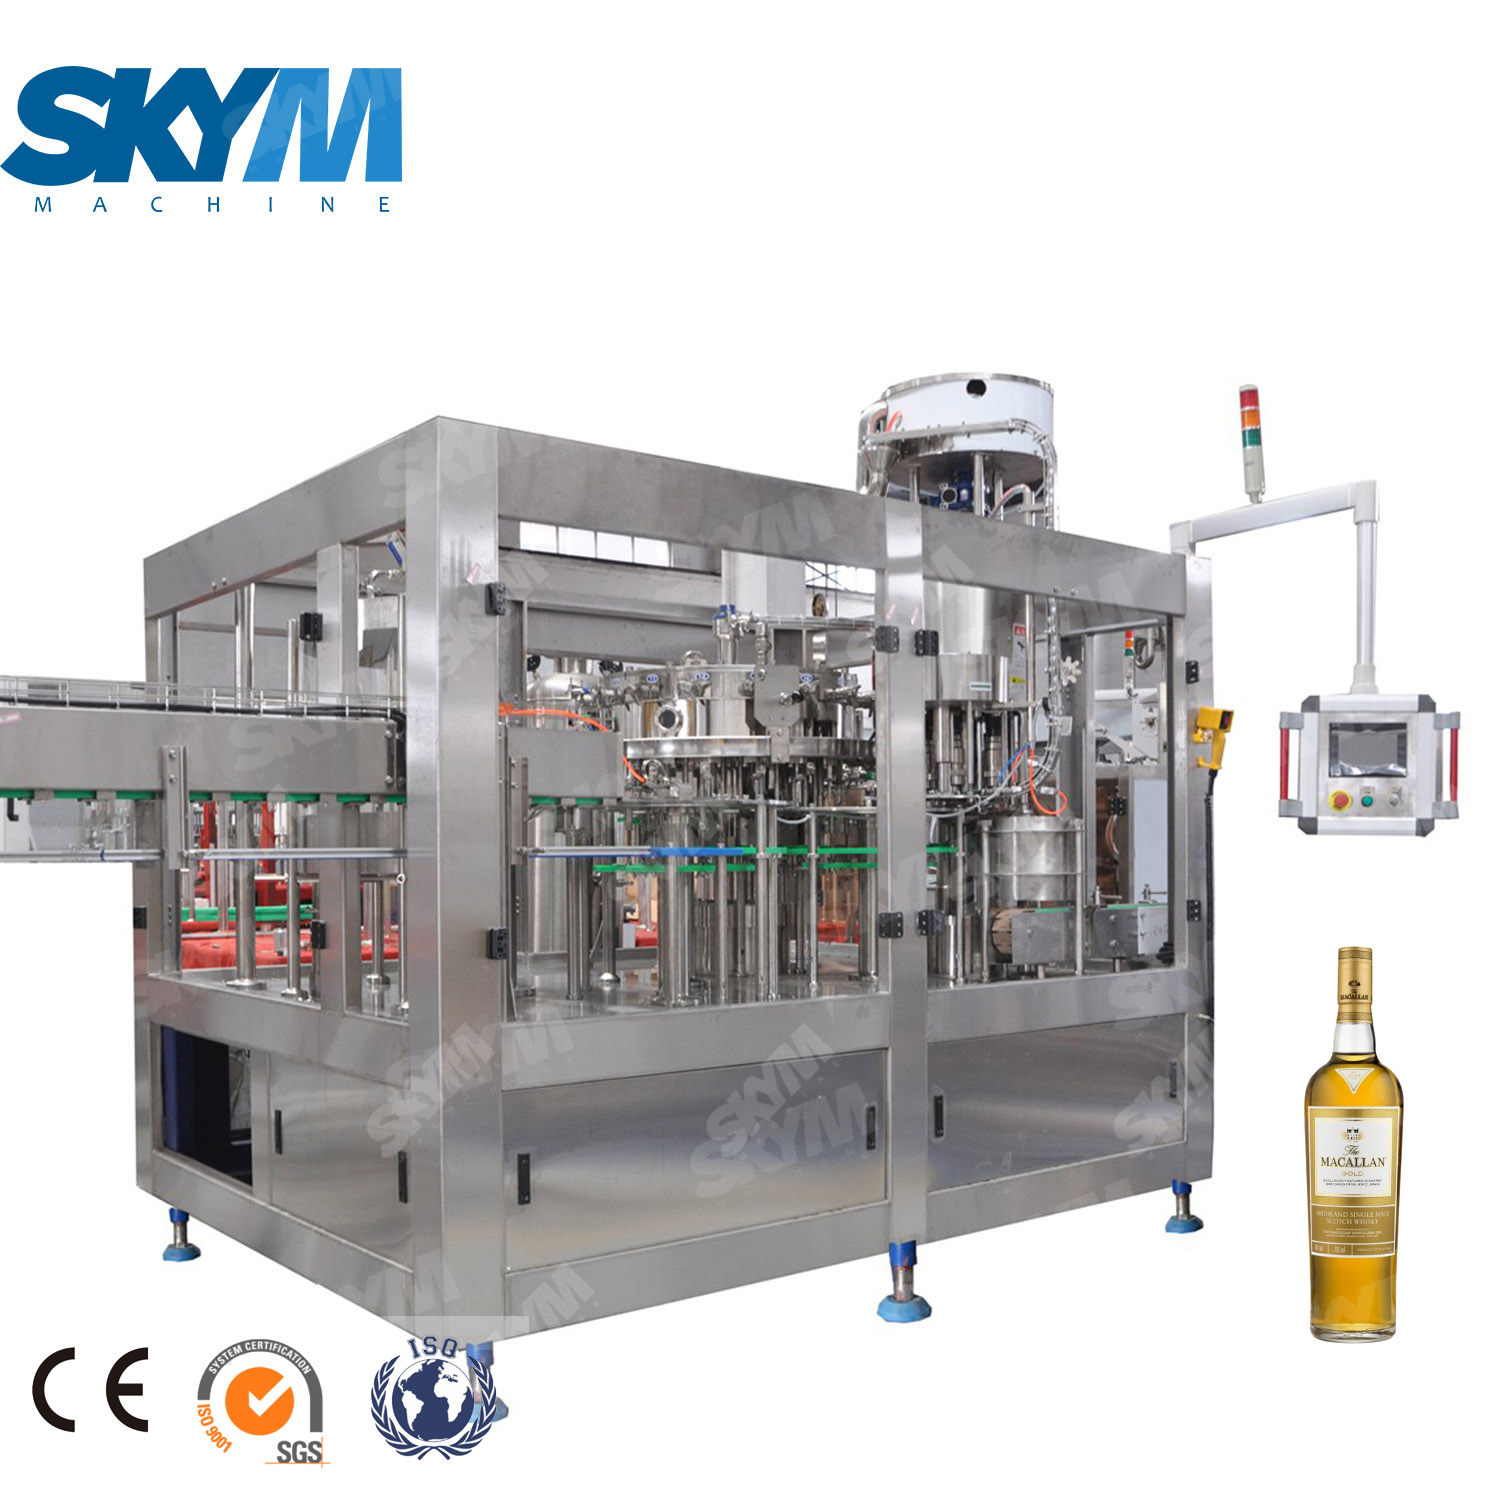 Automatic Wine Filling And Bottling Machine / Equipment